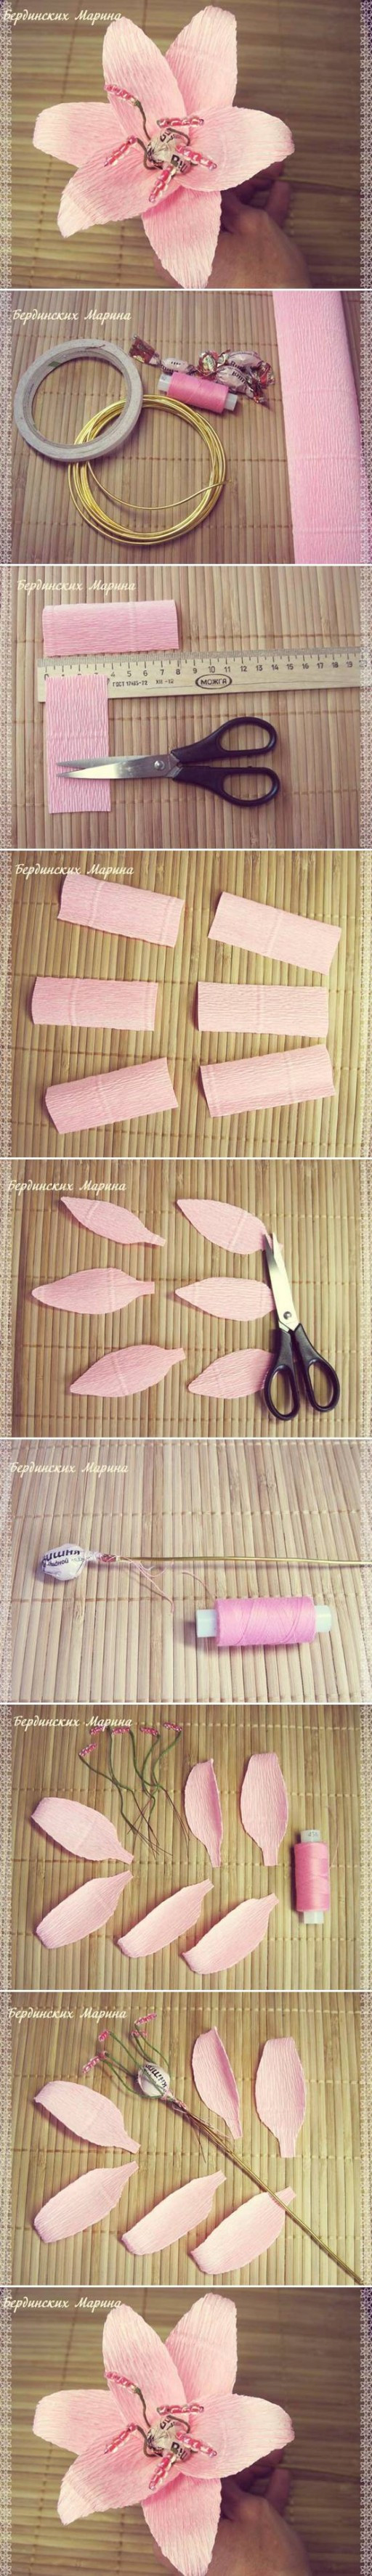 How to make beautiful Lily Flowers step by step DIY tutorial instructions